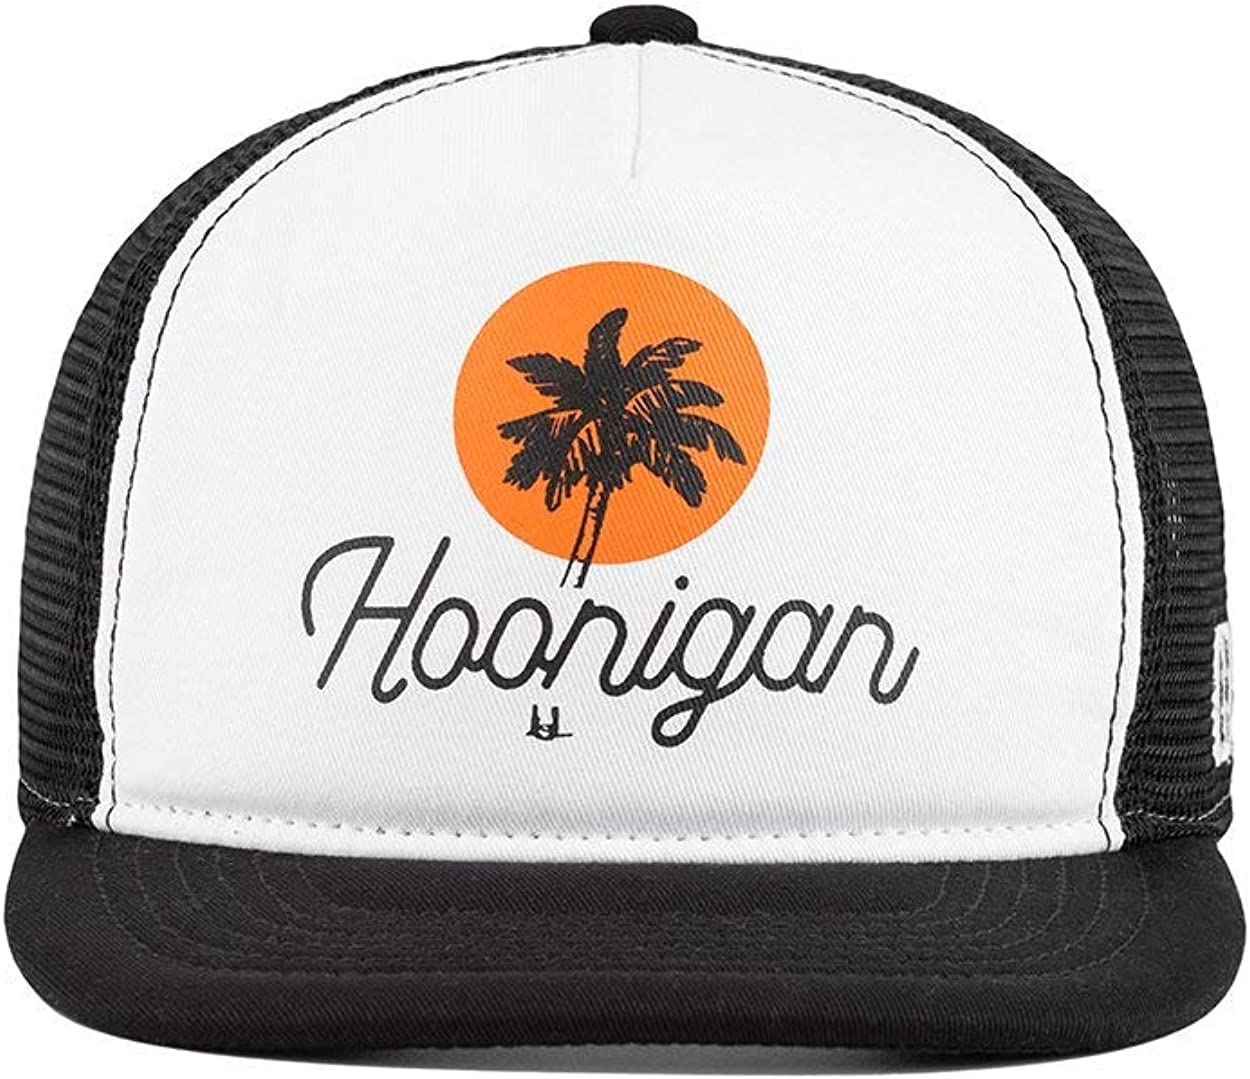 Mechanics and Gear Heads Adjustable Cap Hoonigan Trucker One Size Perfect for Car and Drifting Enthusiasts